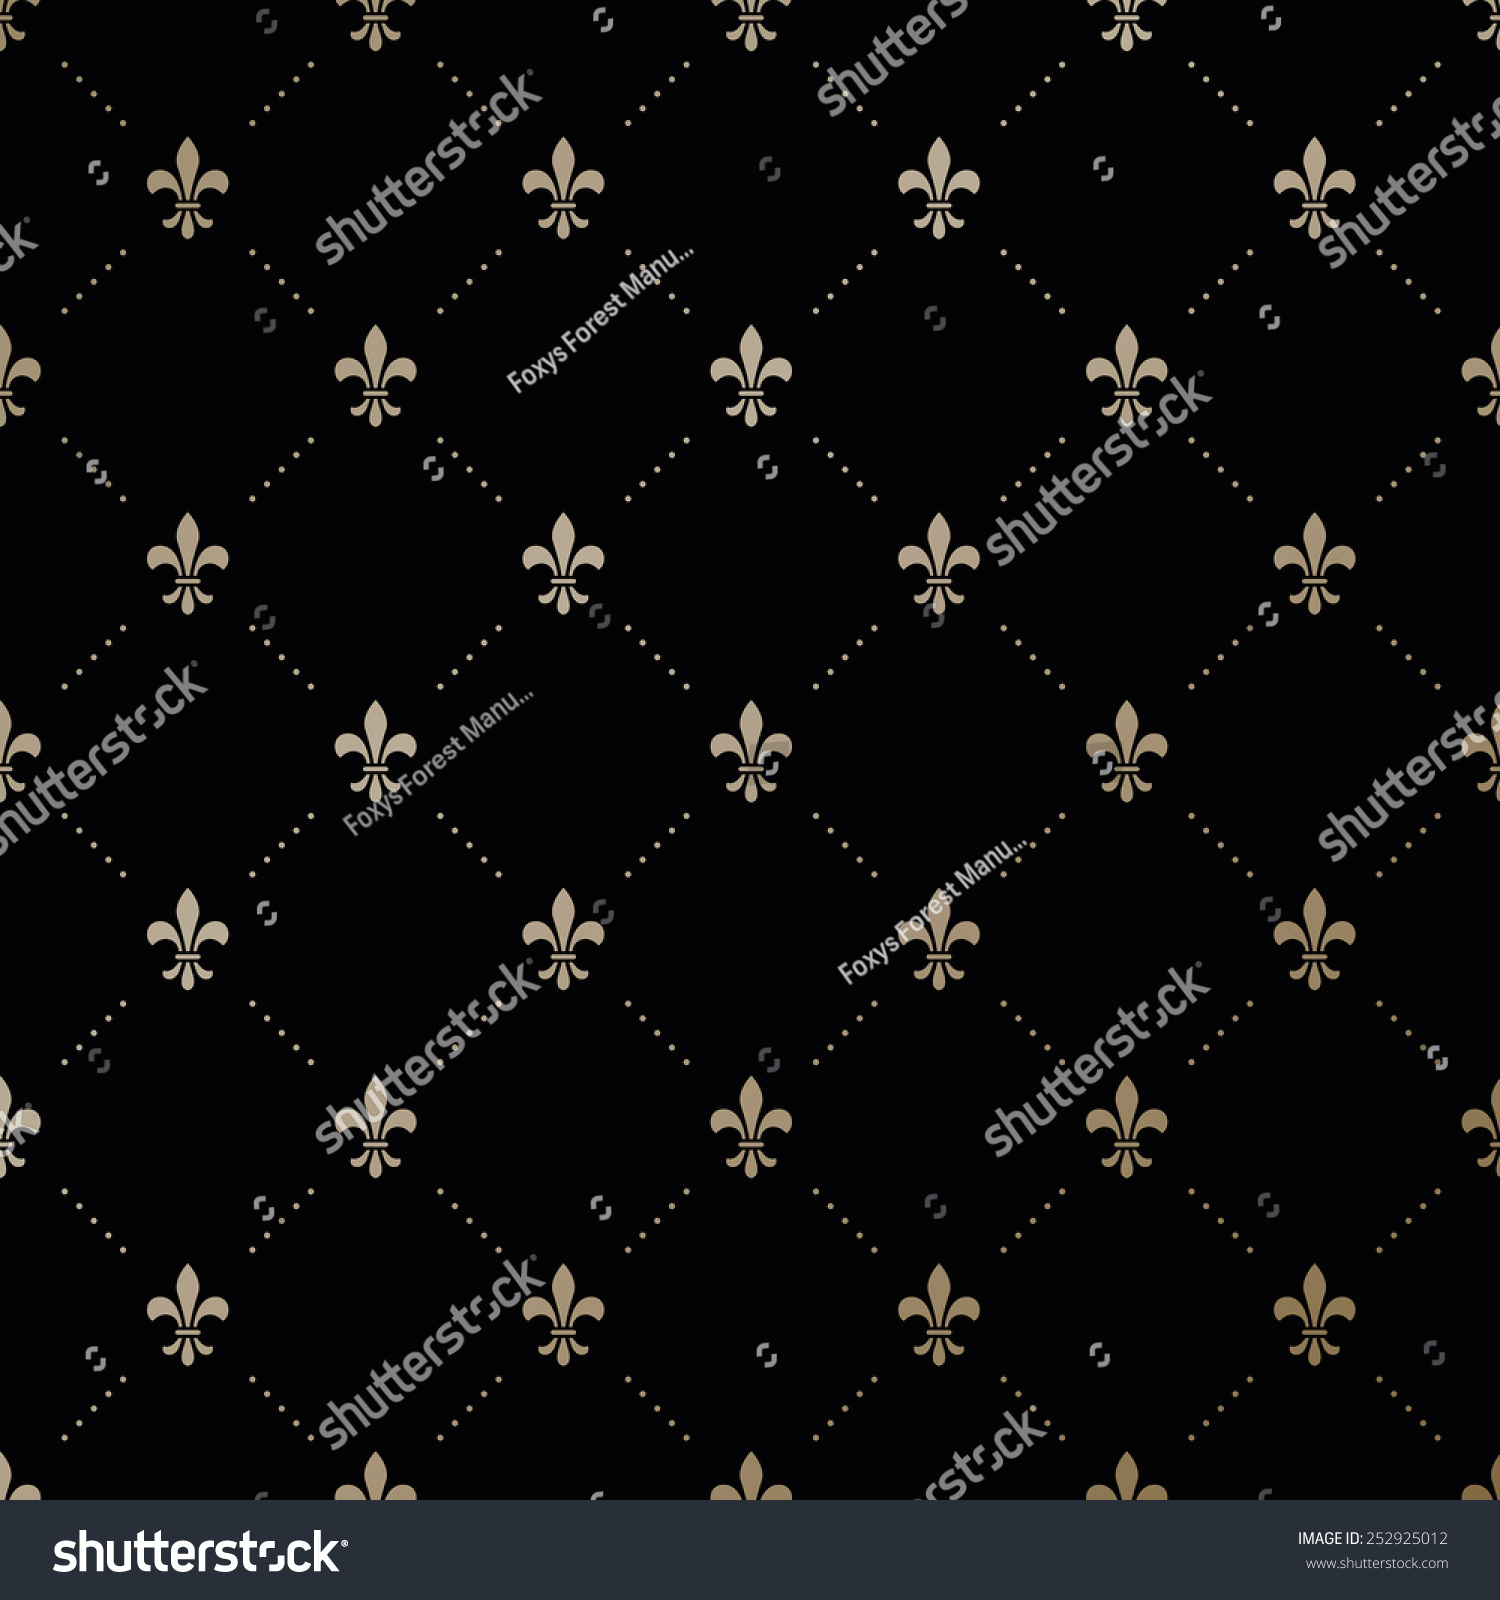 ... With Fleur-De-Lis On A Black Background - 252925012 : Shutterstock